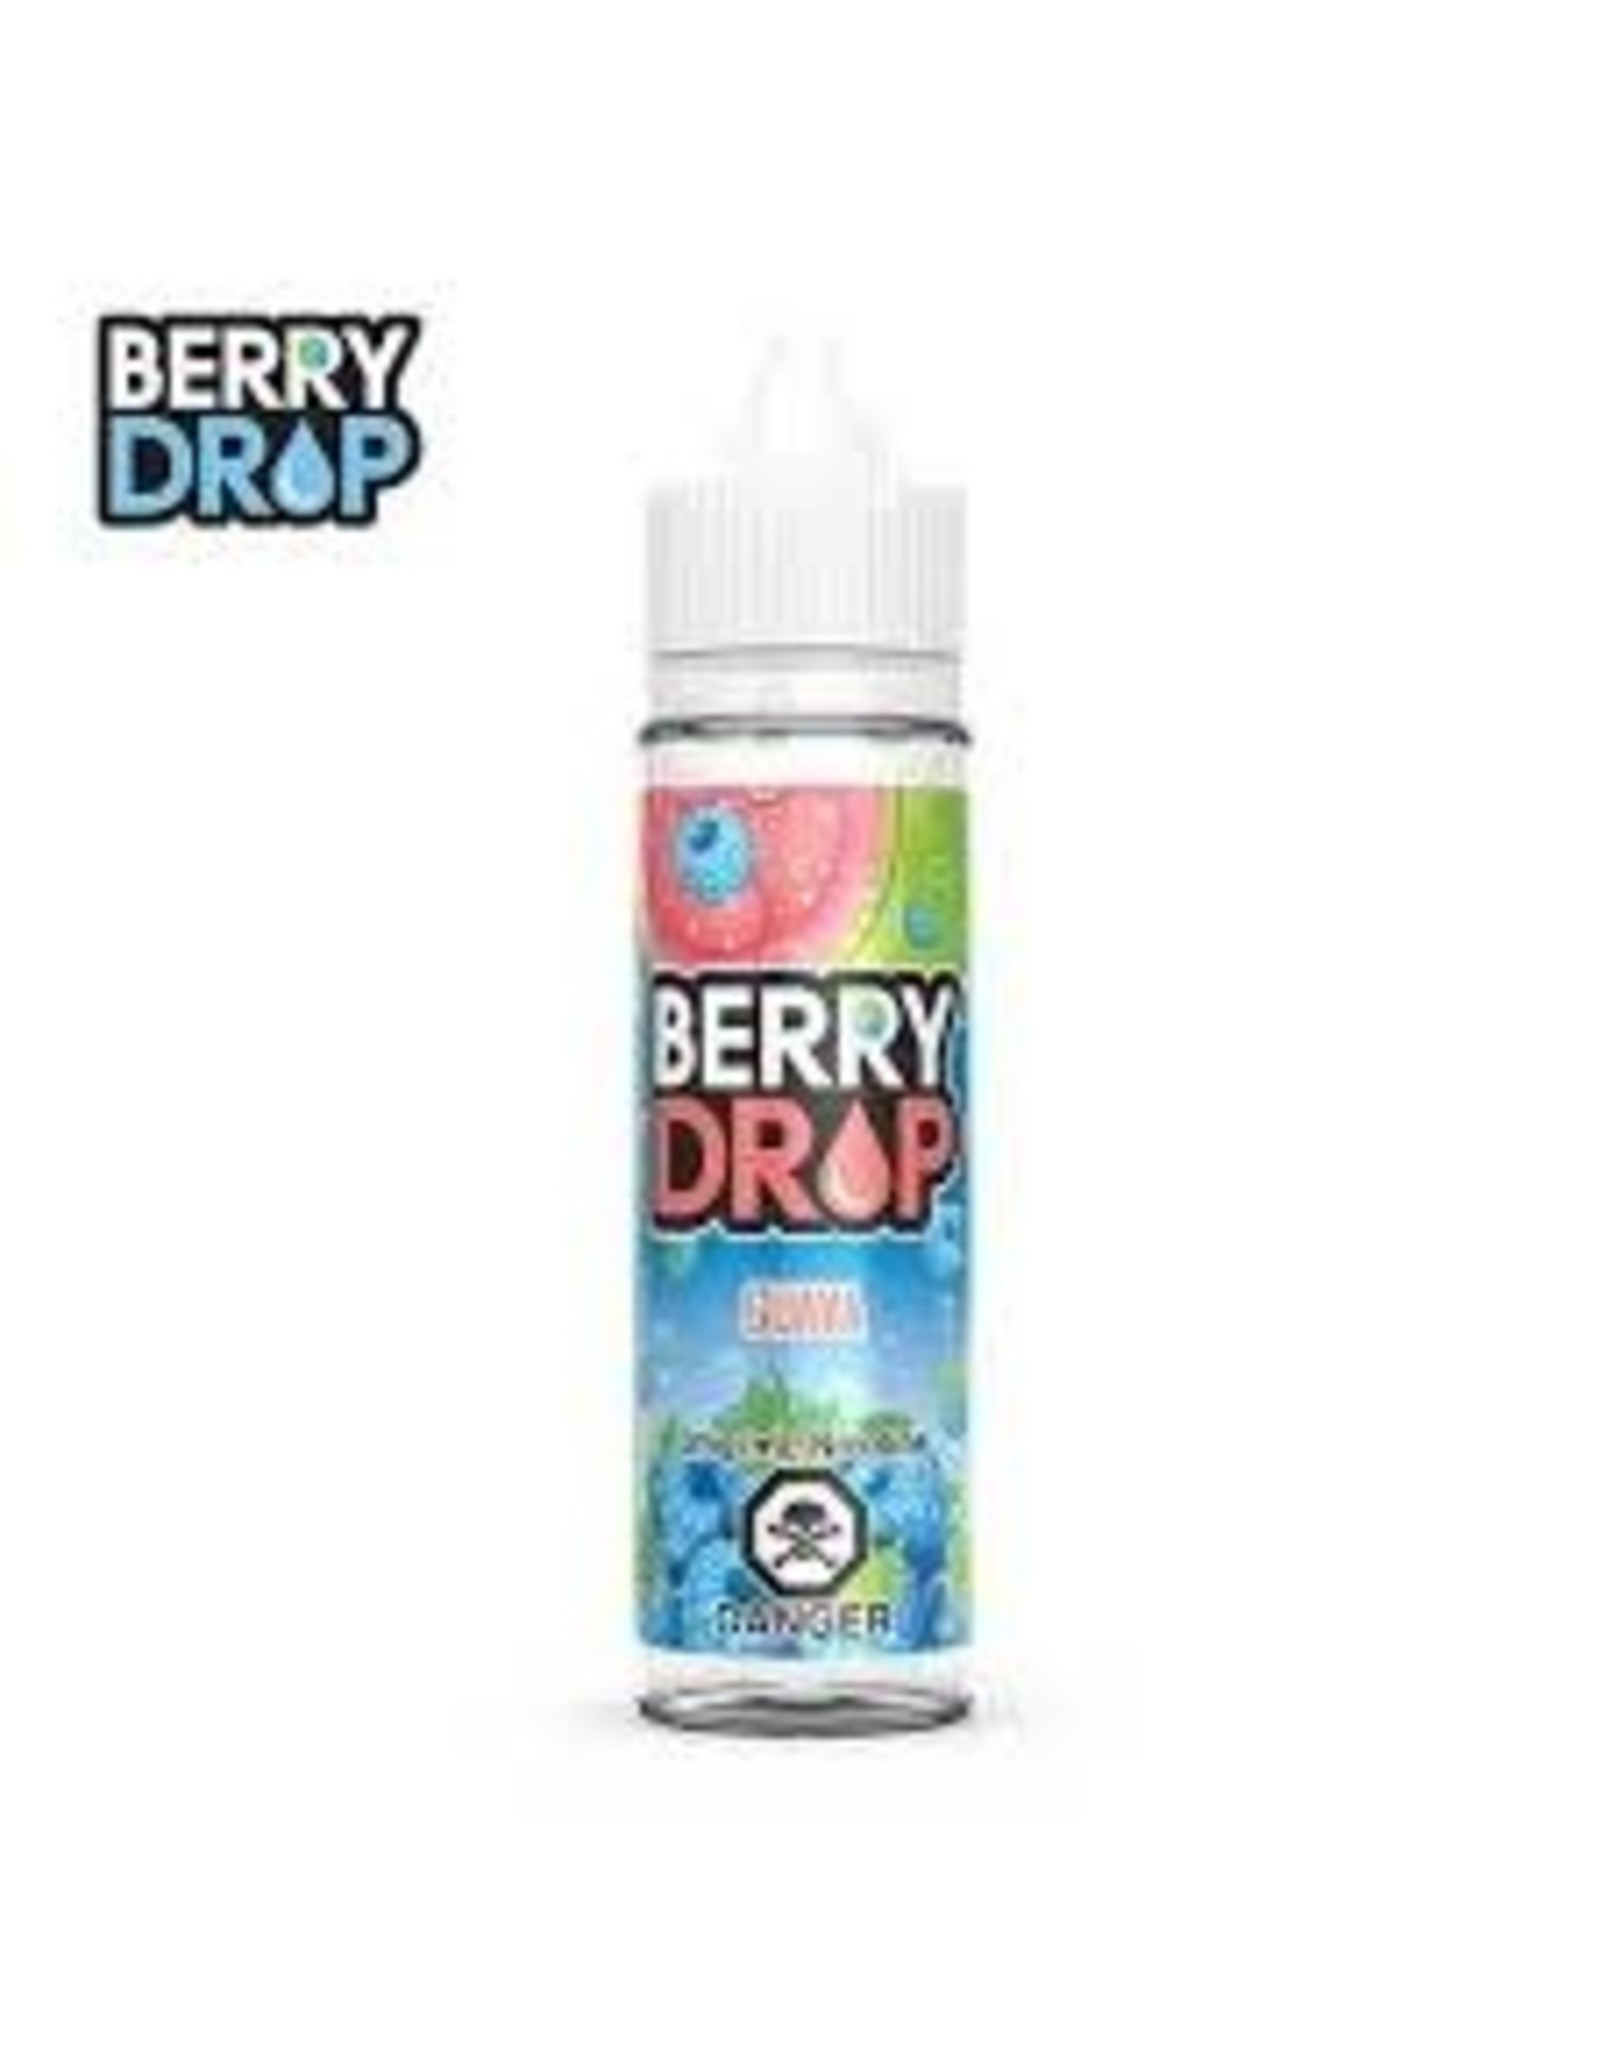 BERRY DROP BERRY DROP E-LIQUID